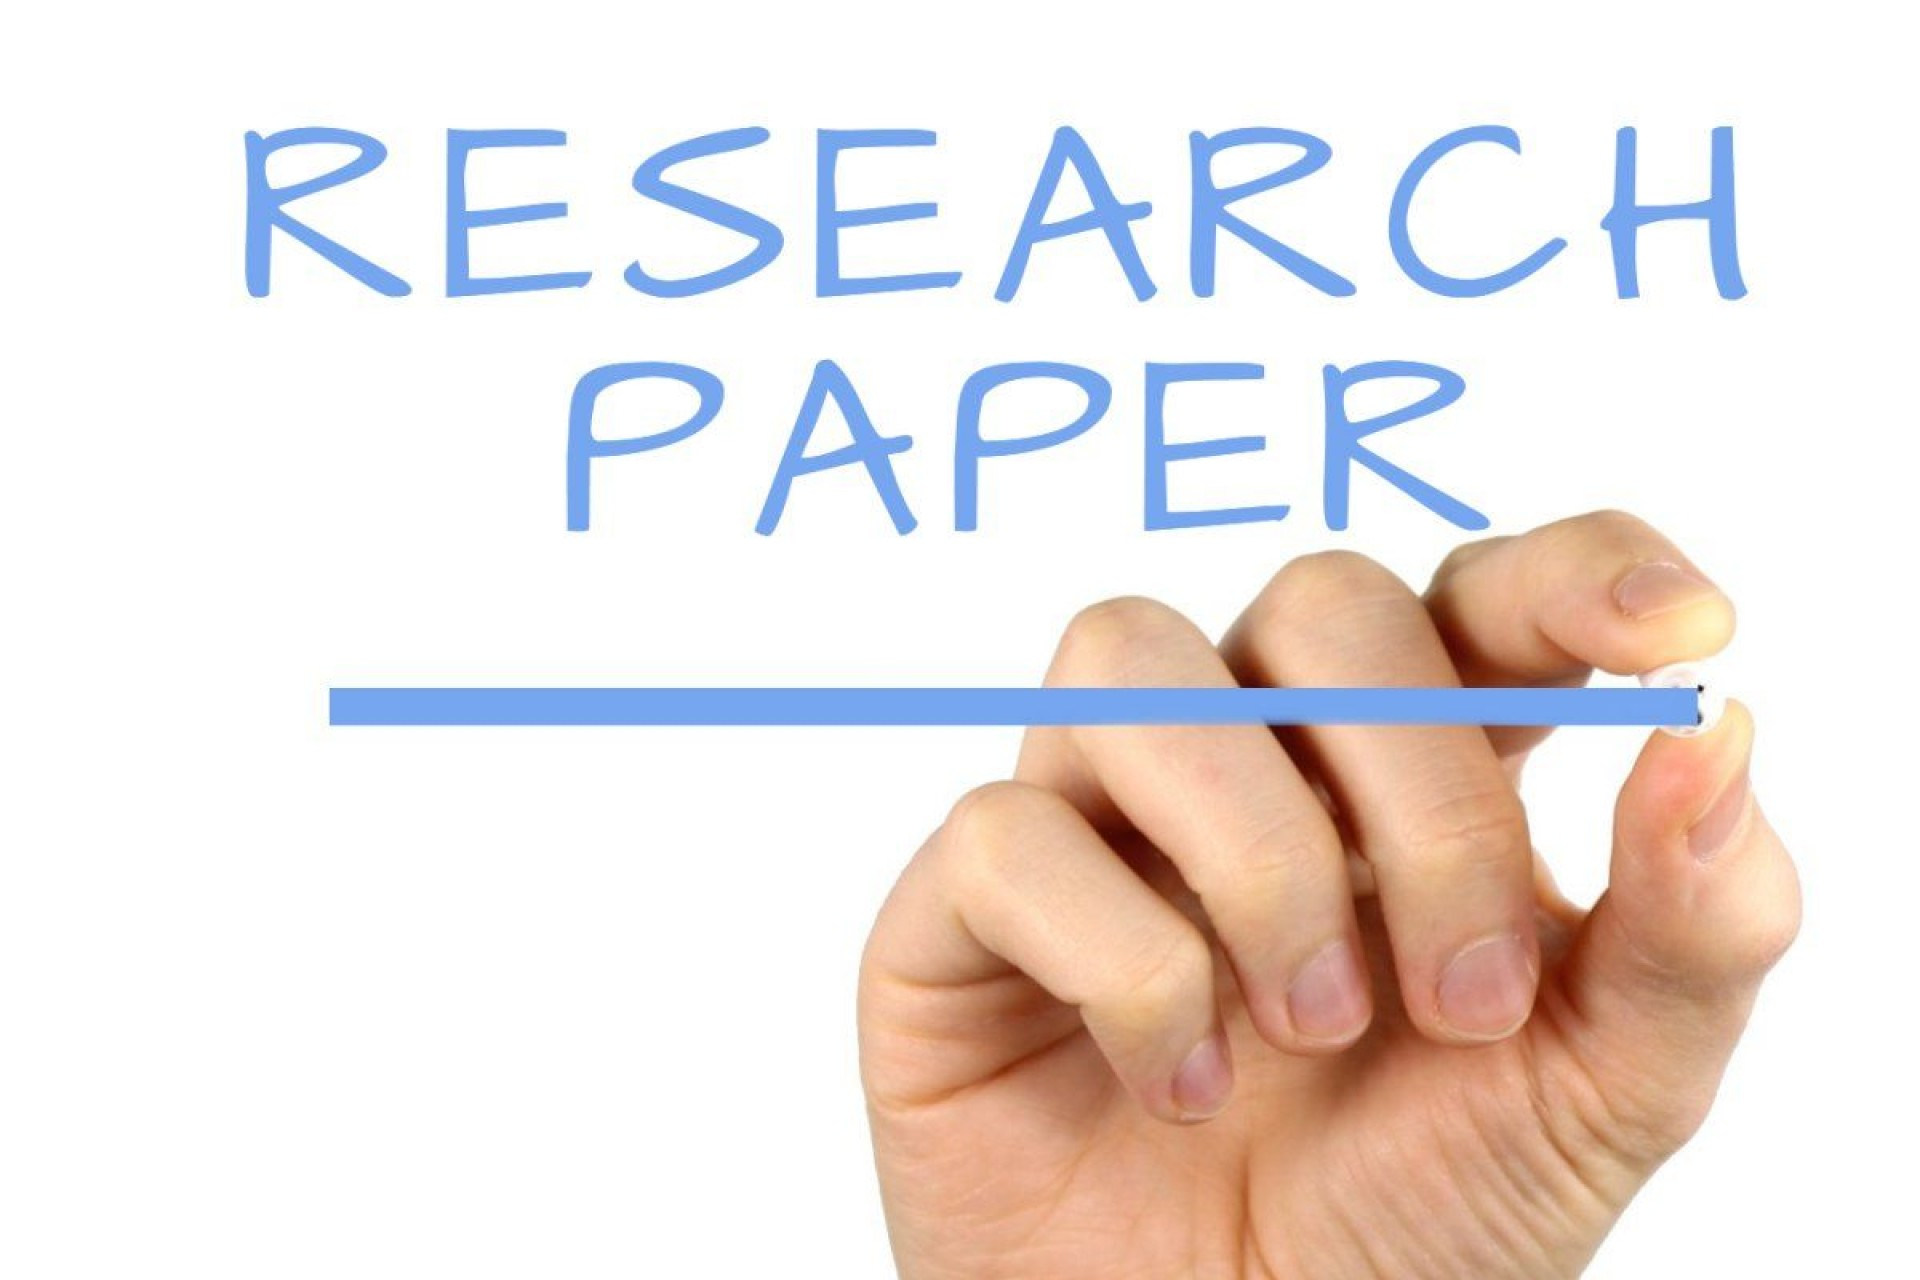 023 Research Paper Best Fearsome Websites Top 10 Free 1920